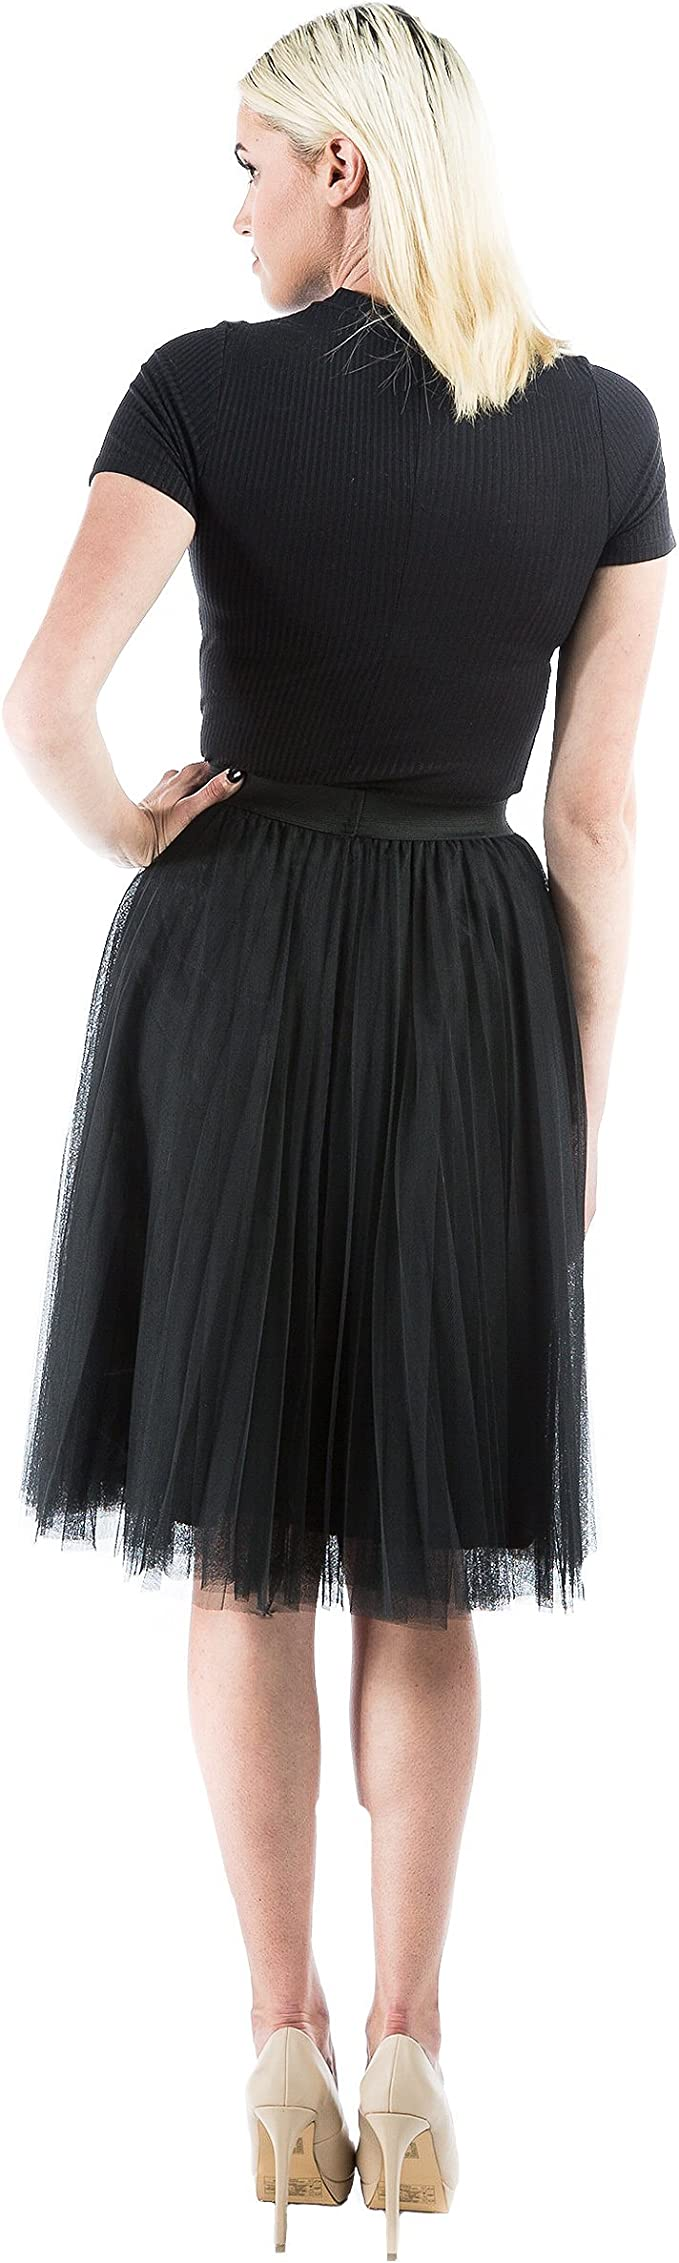 Aerusi Pleated Tulle Lace Skirt With Elasic Waist fits 20-36inches